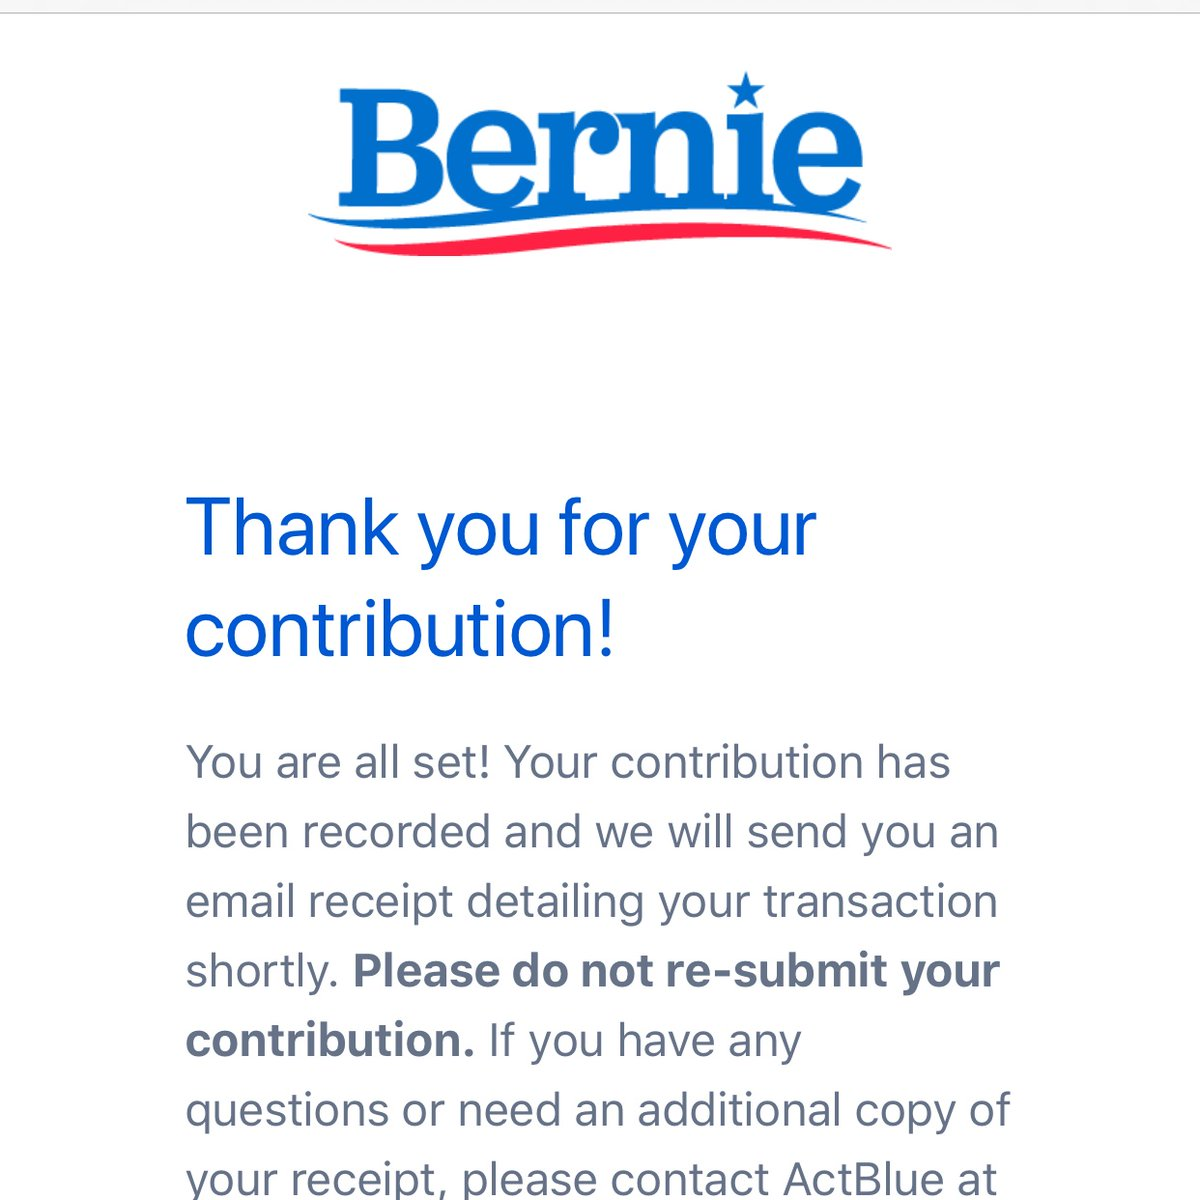 @HillaryClinton thanks for the motivation. Every time you trash him, I will give more  #iLikeBernie  #RespondWithSolidarity<br>http://pic.twitter.com/Jf5iV7dRlj